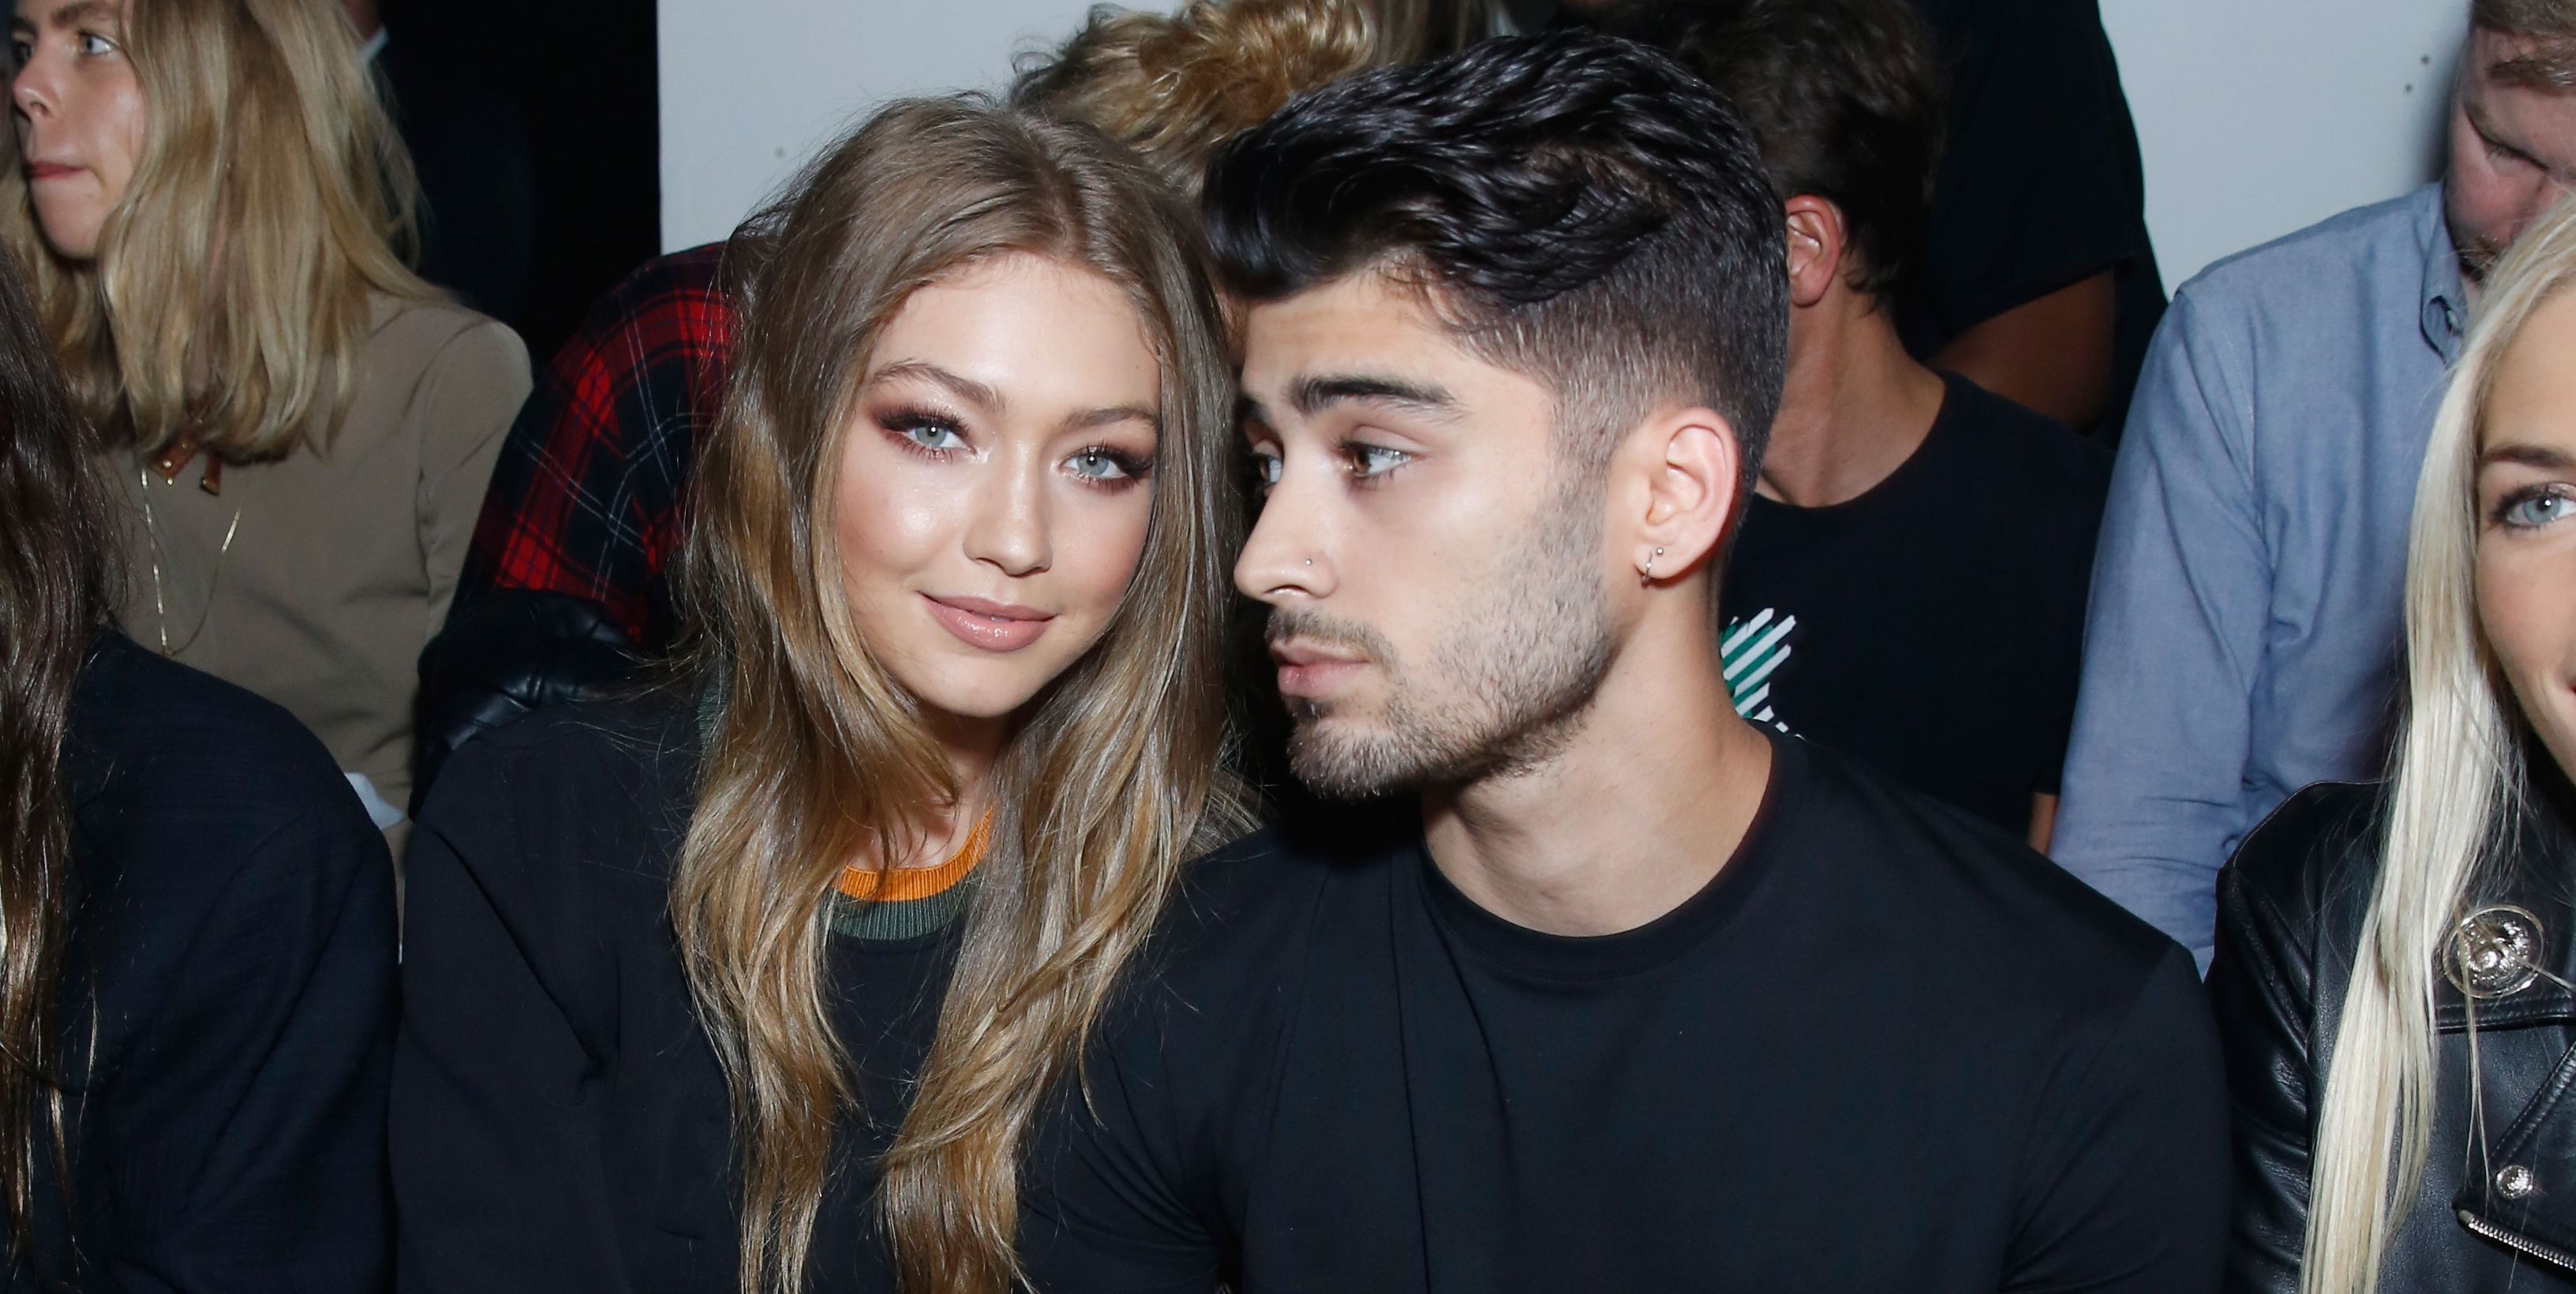 A definitive timeline of Zayn Malik and Gigi Hadid's relationship